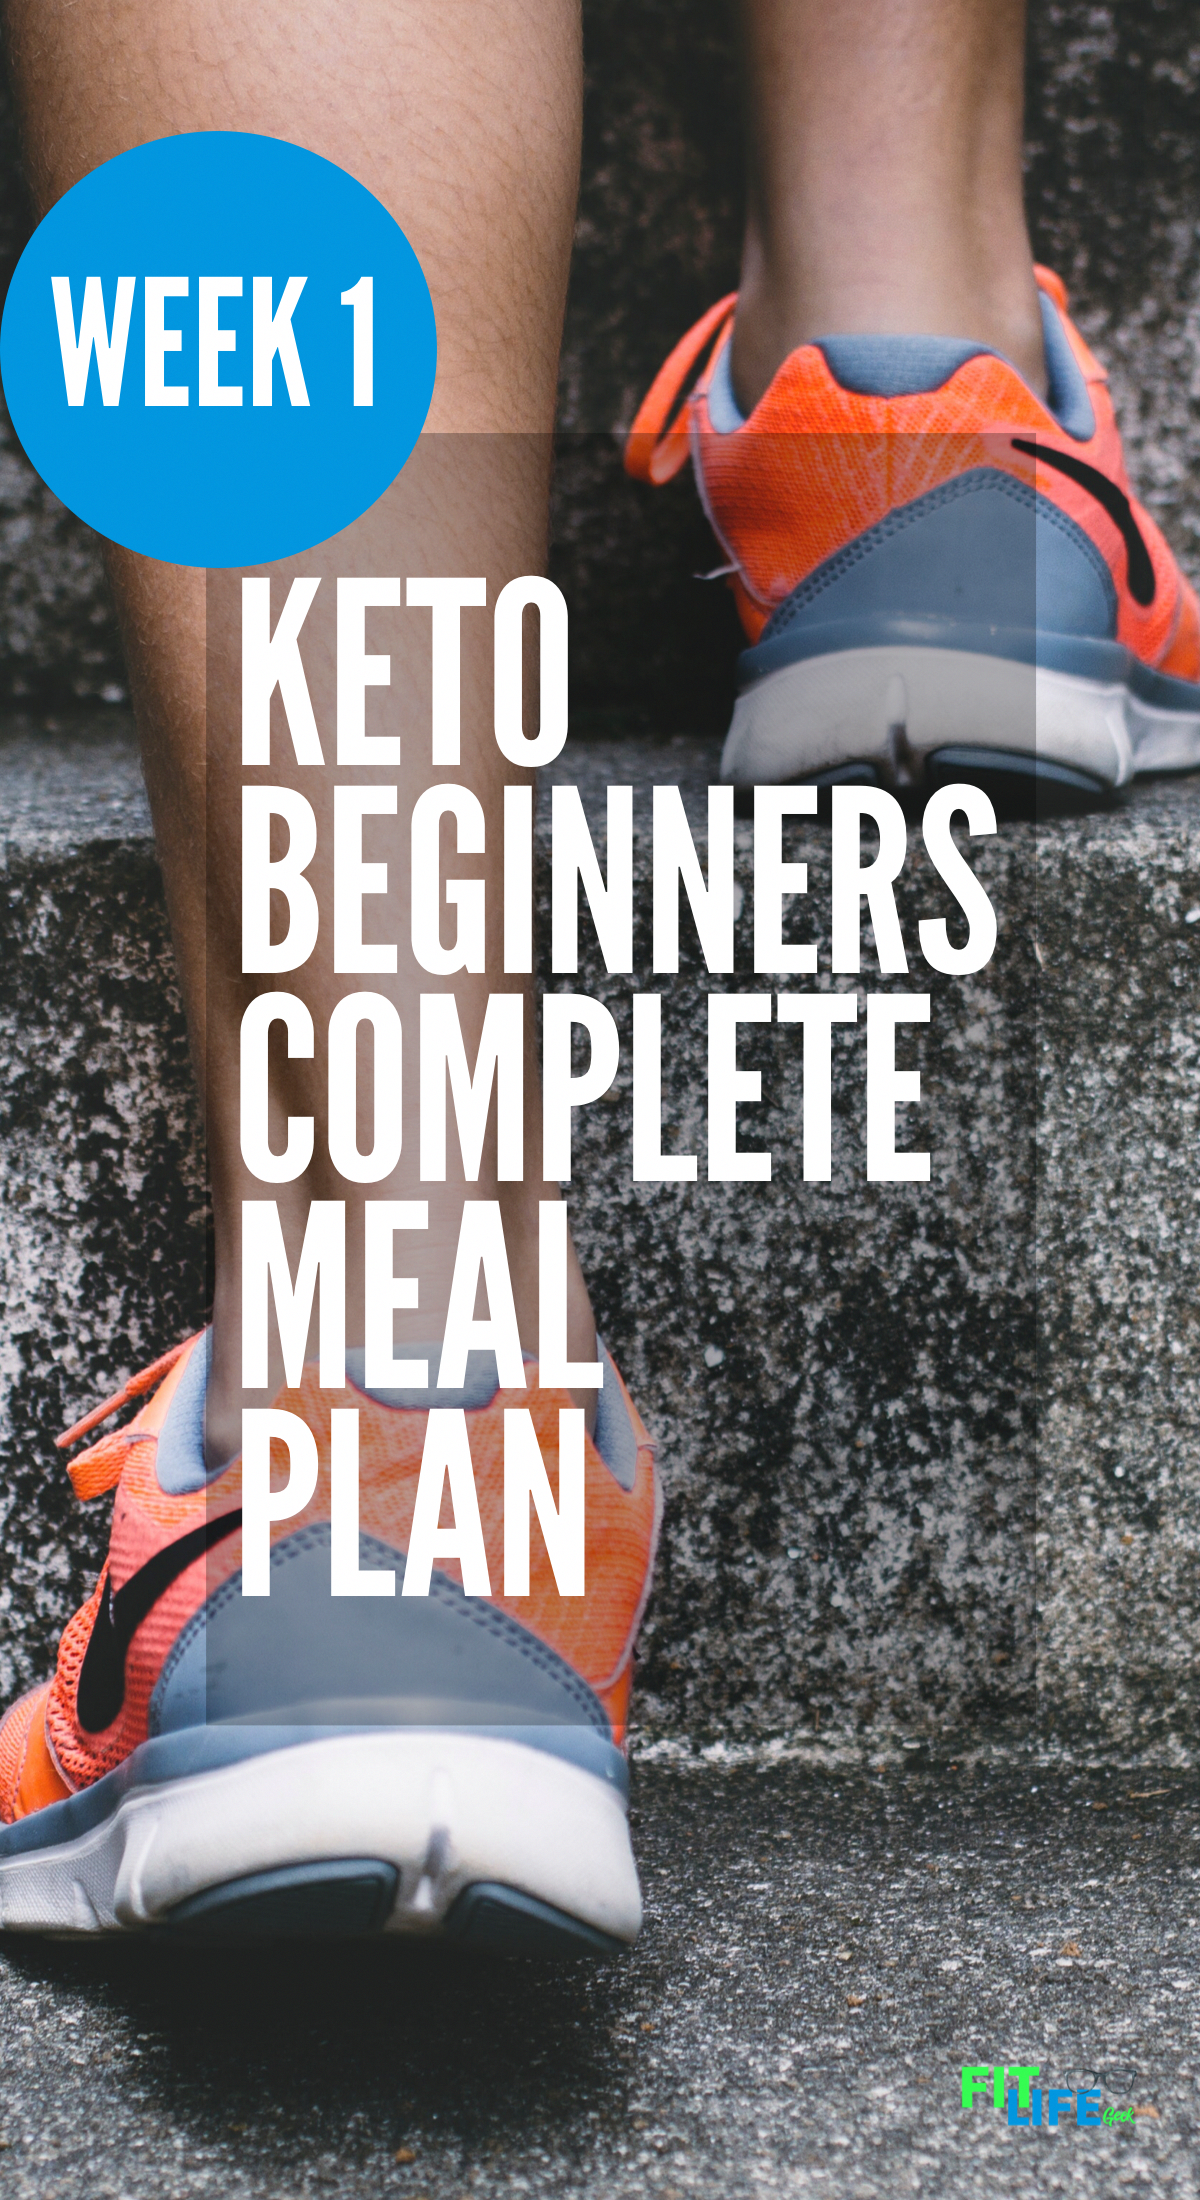 Keto Diet for Beginners Week One Meal Plan Breakfast lunch and dinner full Keto recipes to get you started on the ketogenic diet without the hassle You may encounter a lo...